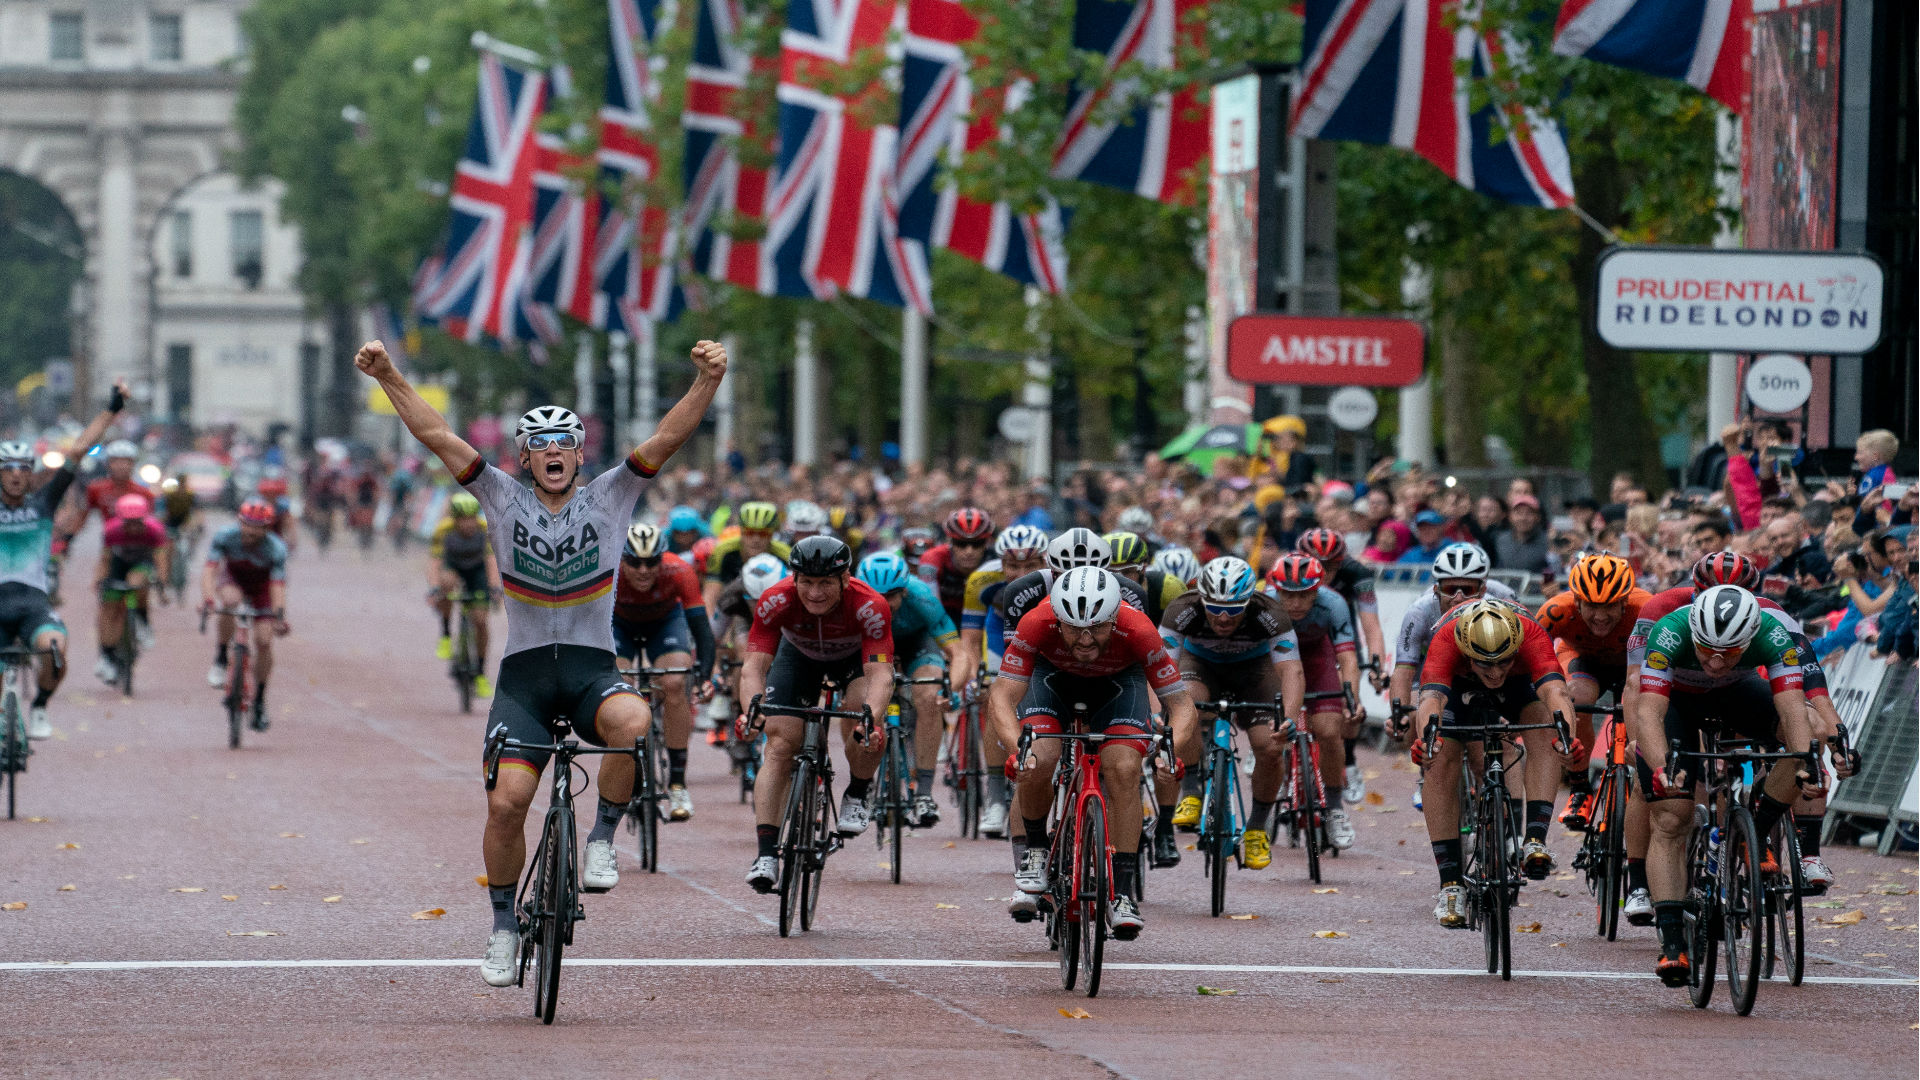 Cyclist celebrating at the Prudential RideLondon Classic. Image courtesy of RideLondon.